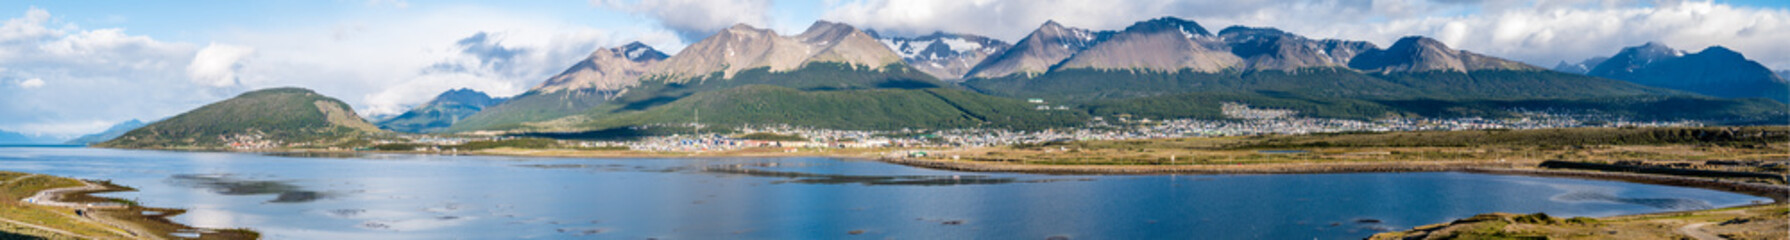 Skyline of Ushuaia with Martial mountains and Beagle Channel, Terra del Fuego, Patagonia, Argentina